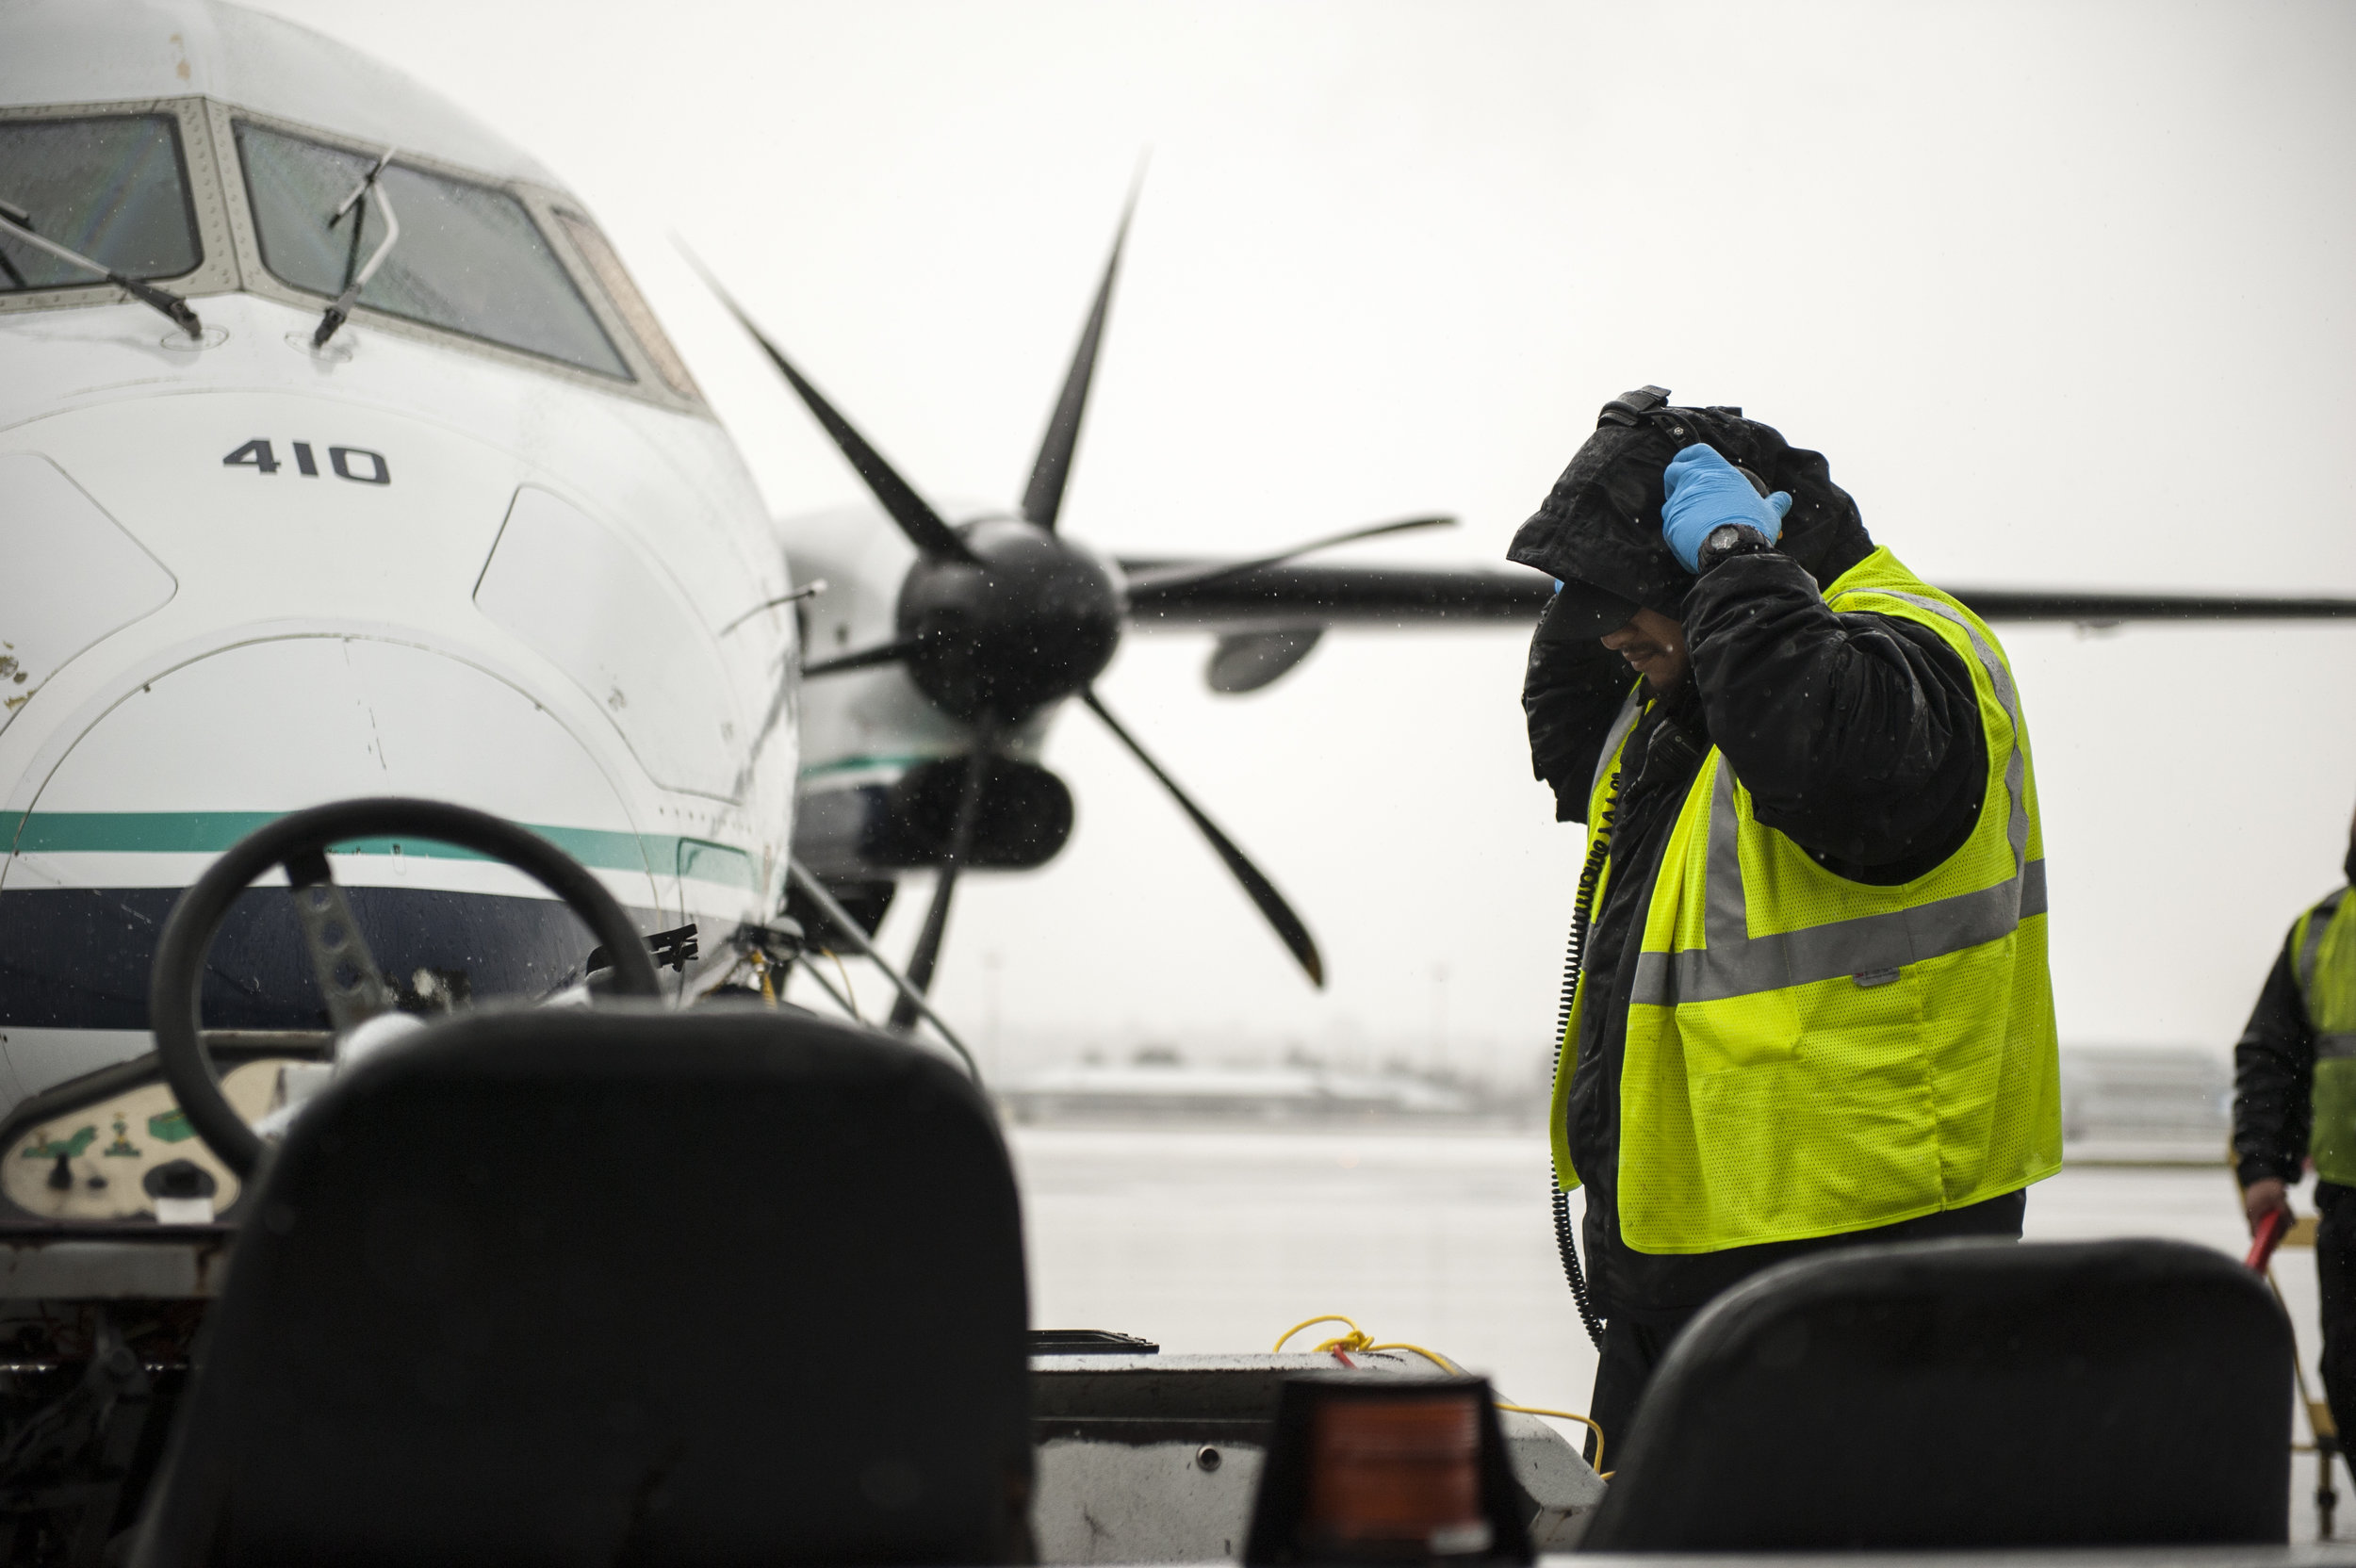 A ramp agent at Portland International Airport tests a communication headset prior to pushing back a flight Monday, Mar. 13, 2017.